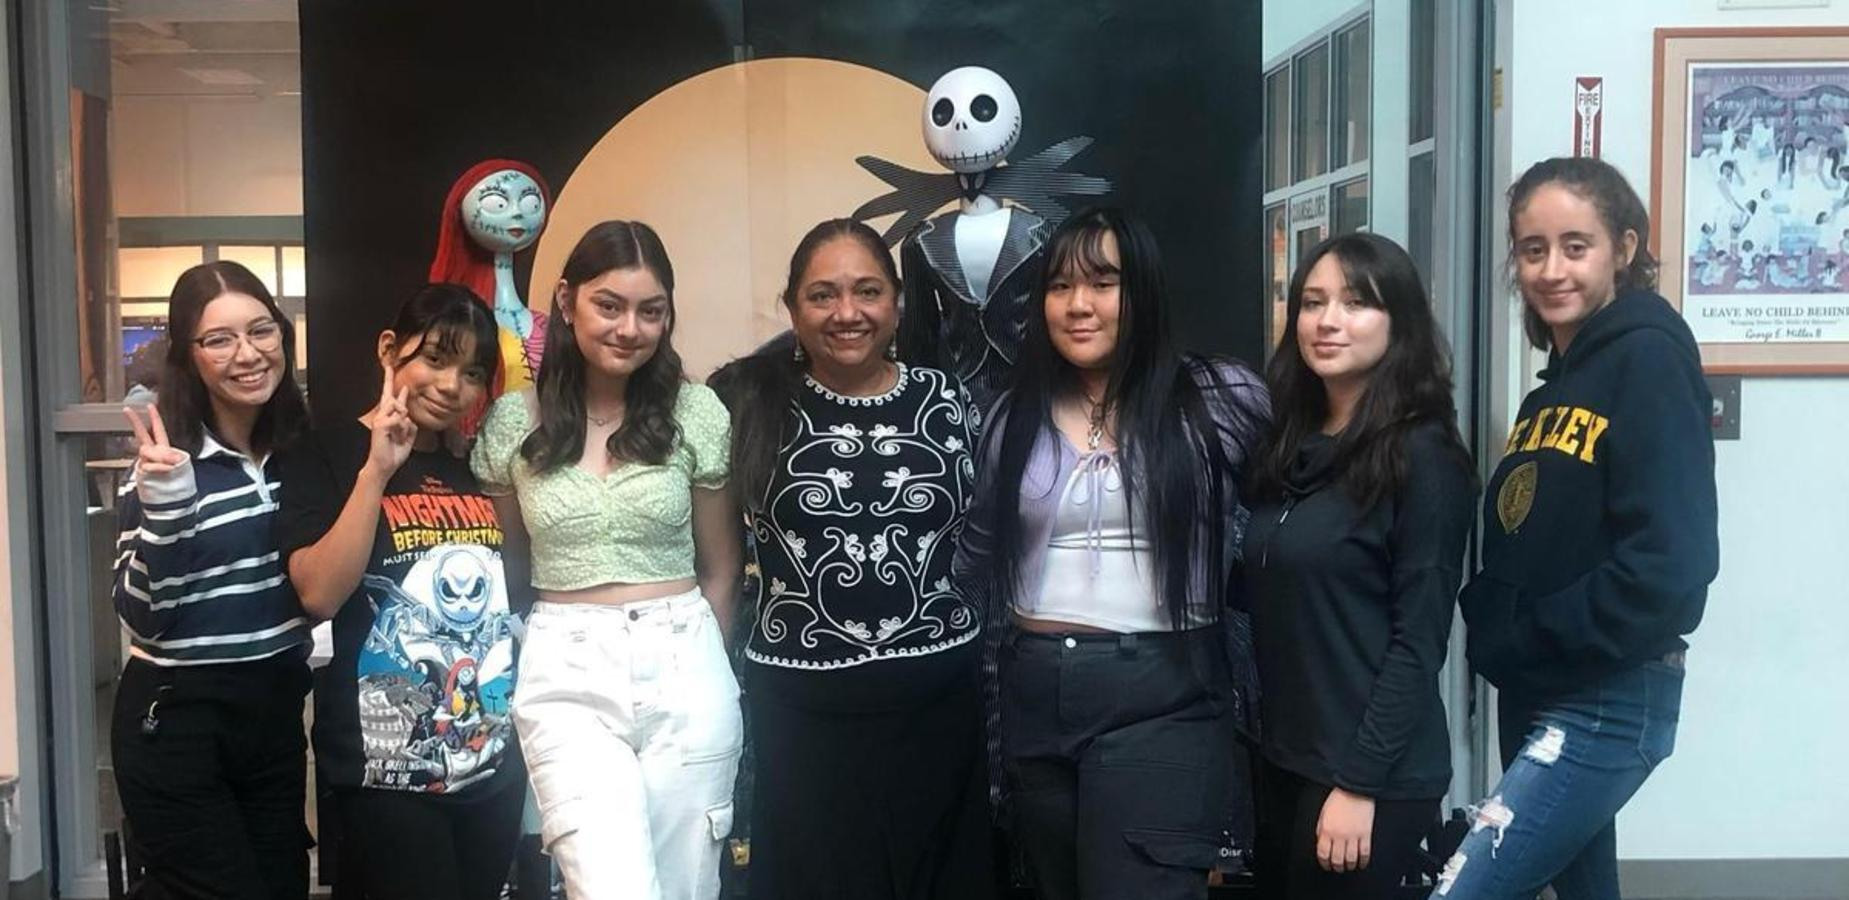 The young women in the picture are 4-year college students. So proud of these resilient young ladies - Lorraine Canales